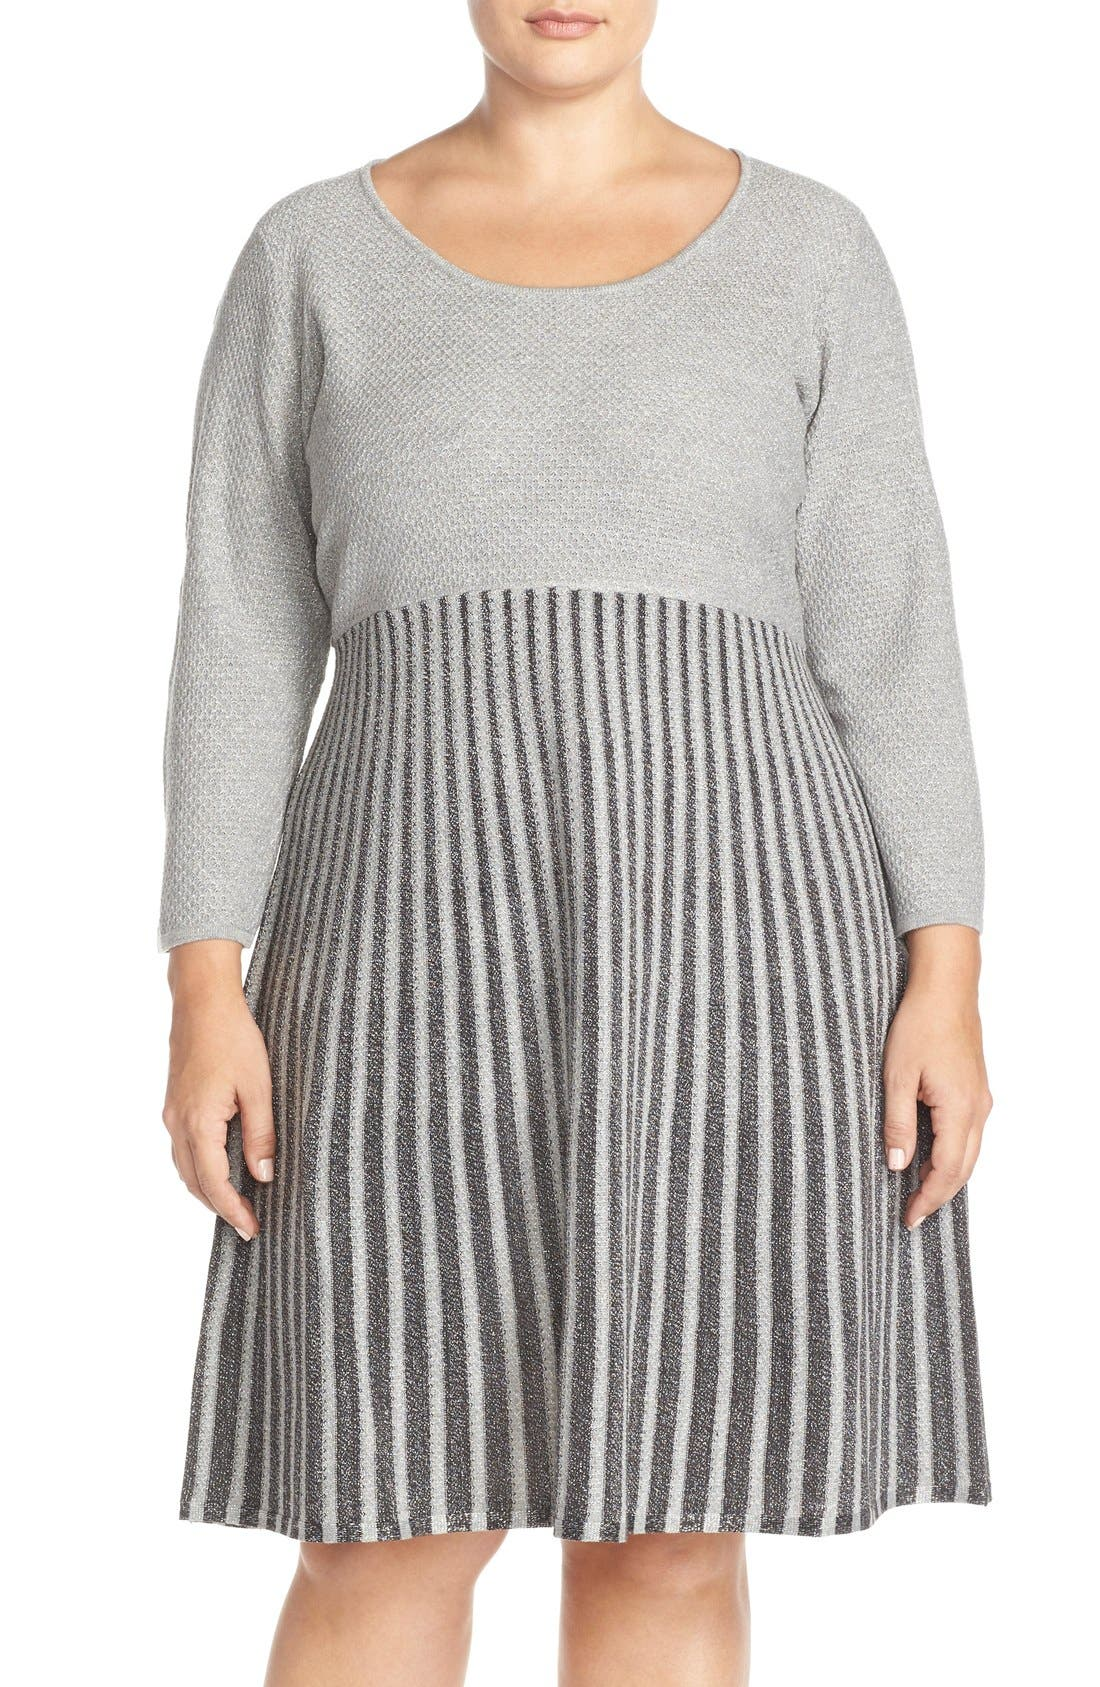 Scoop Neck Fit & Flare Sweater Dress,                             Main thumbnail 1, color,                             082